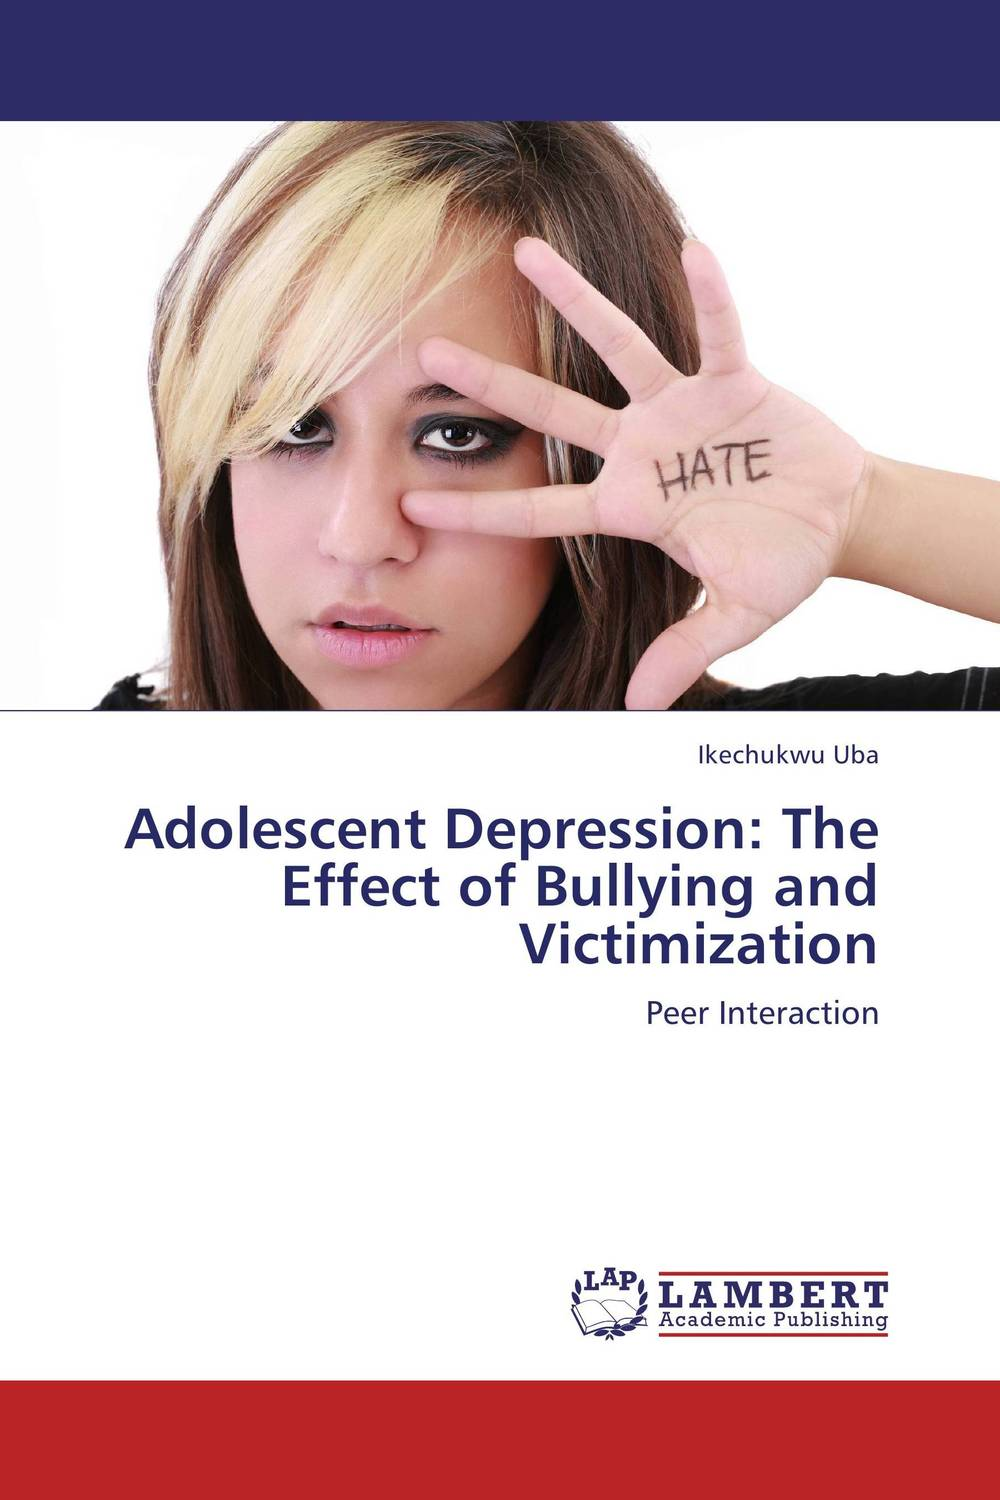 Adolescent Depression: The Effect of Bullying and Victimization assessment and treatment of depression in children and adolescents